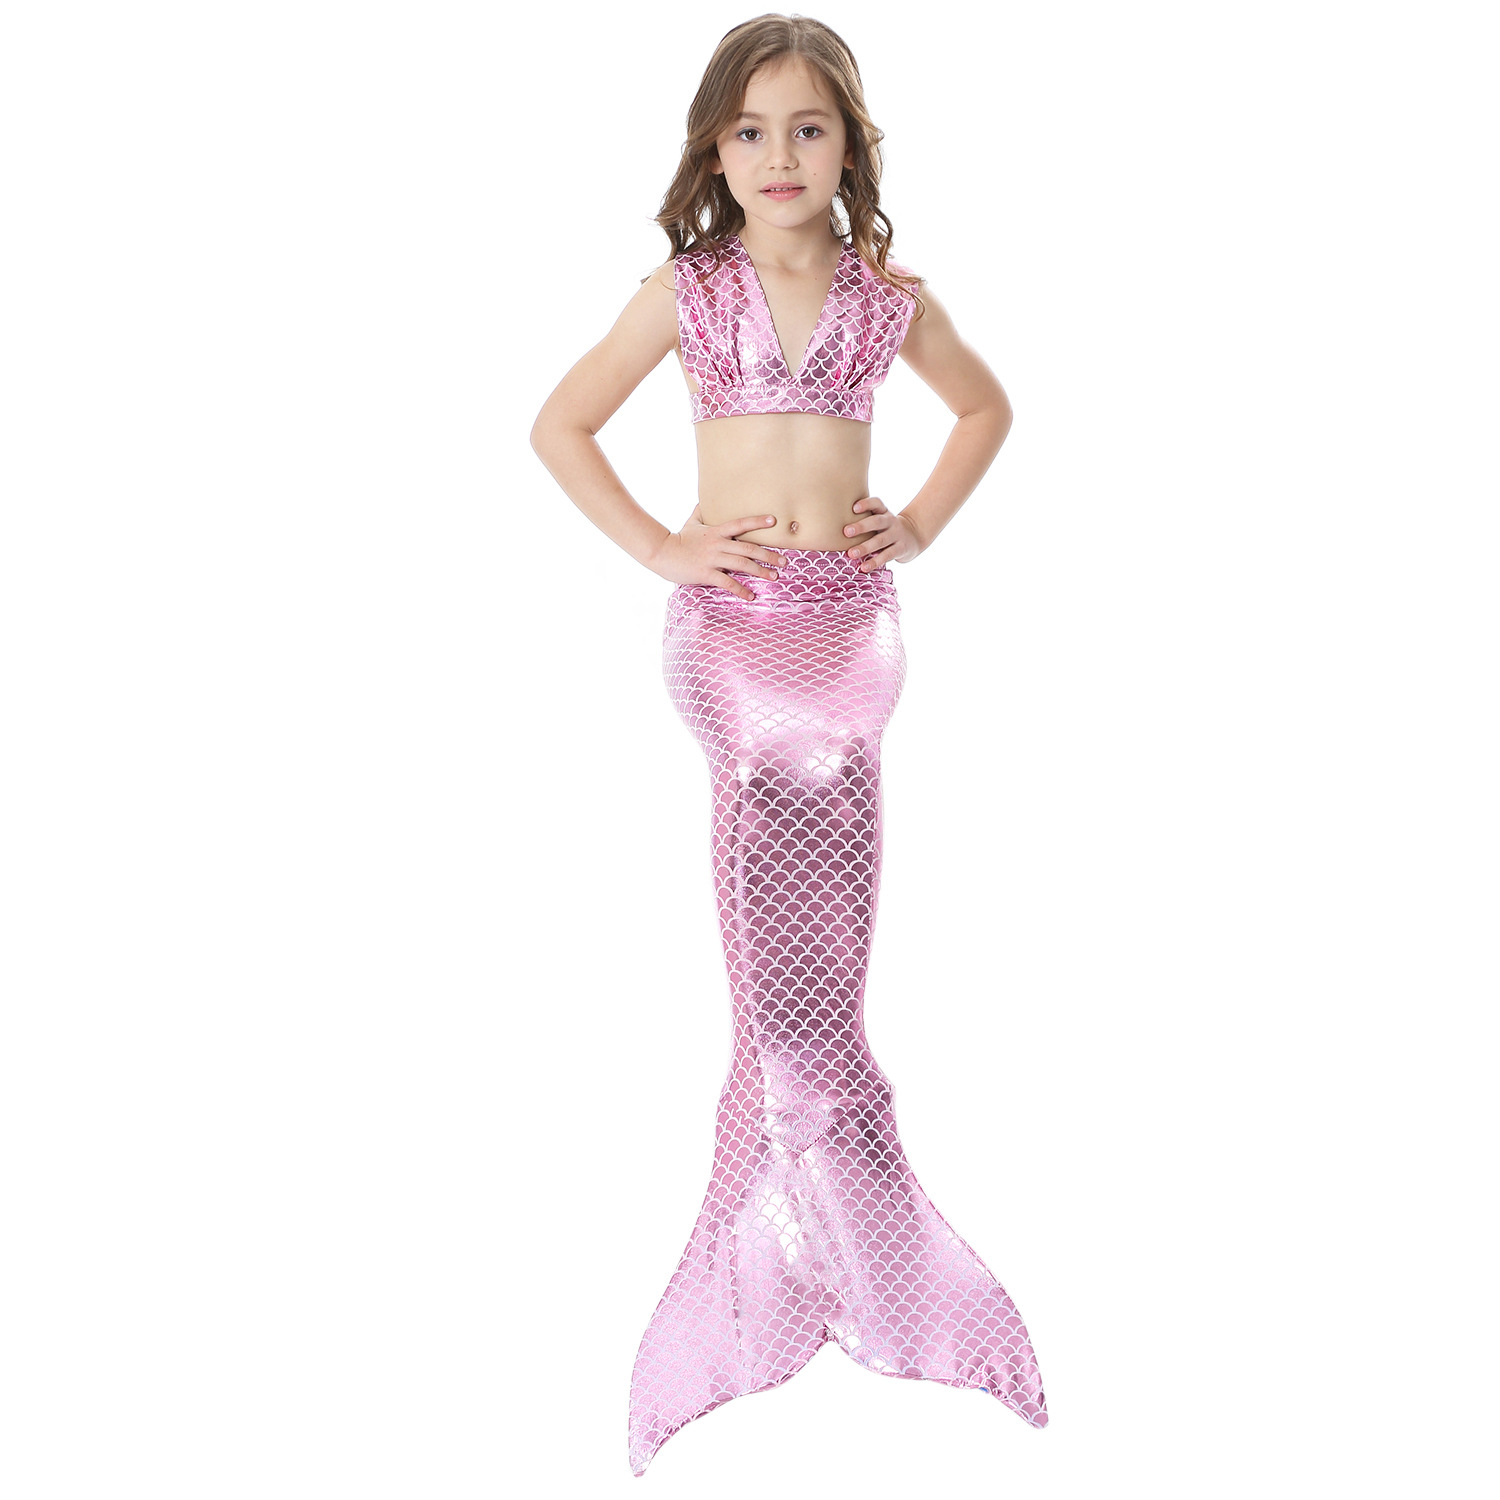 Little Mermaid Tails for Swimming Costume Mermaid Tail Cosplay Girls Swimsuit Kids Children Swimmable suit Monofin 5